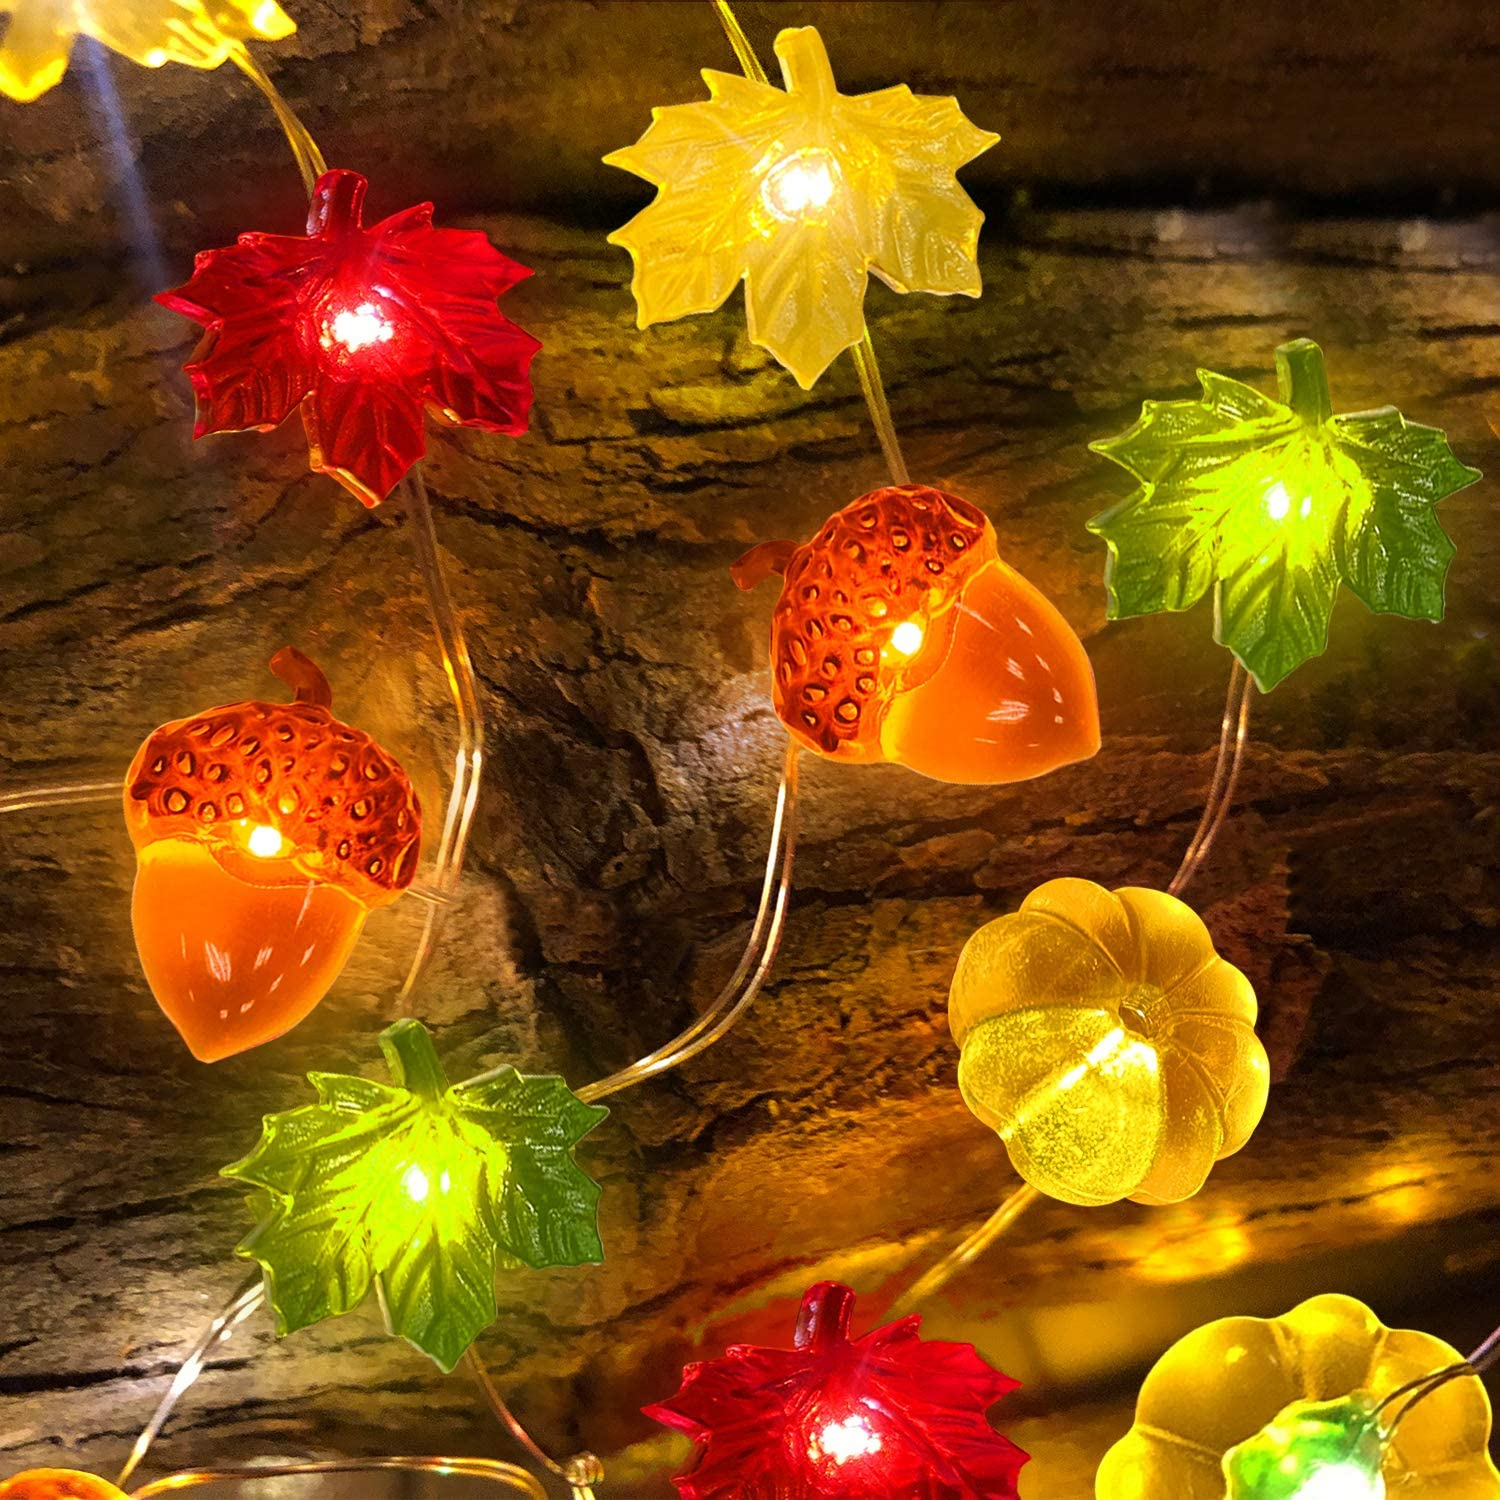 TURNMEON 3D Pumpkin Maples Acorns String Lights Fall Decor, 10Ft 30LED Warm White Battery Powered Fall Garland with Lights Indoor Outdoor Decoration for Fall Autumn Halloween Thanksgiving Home Party